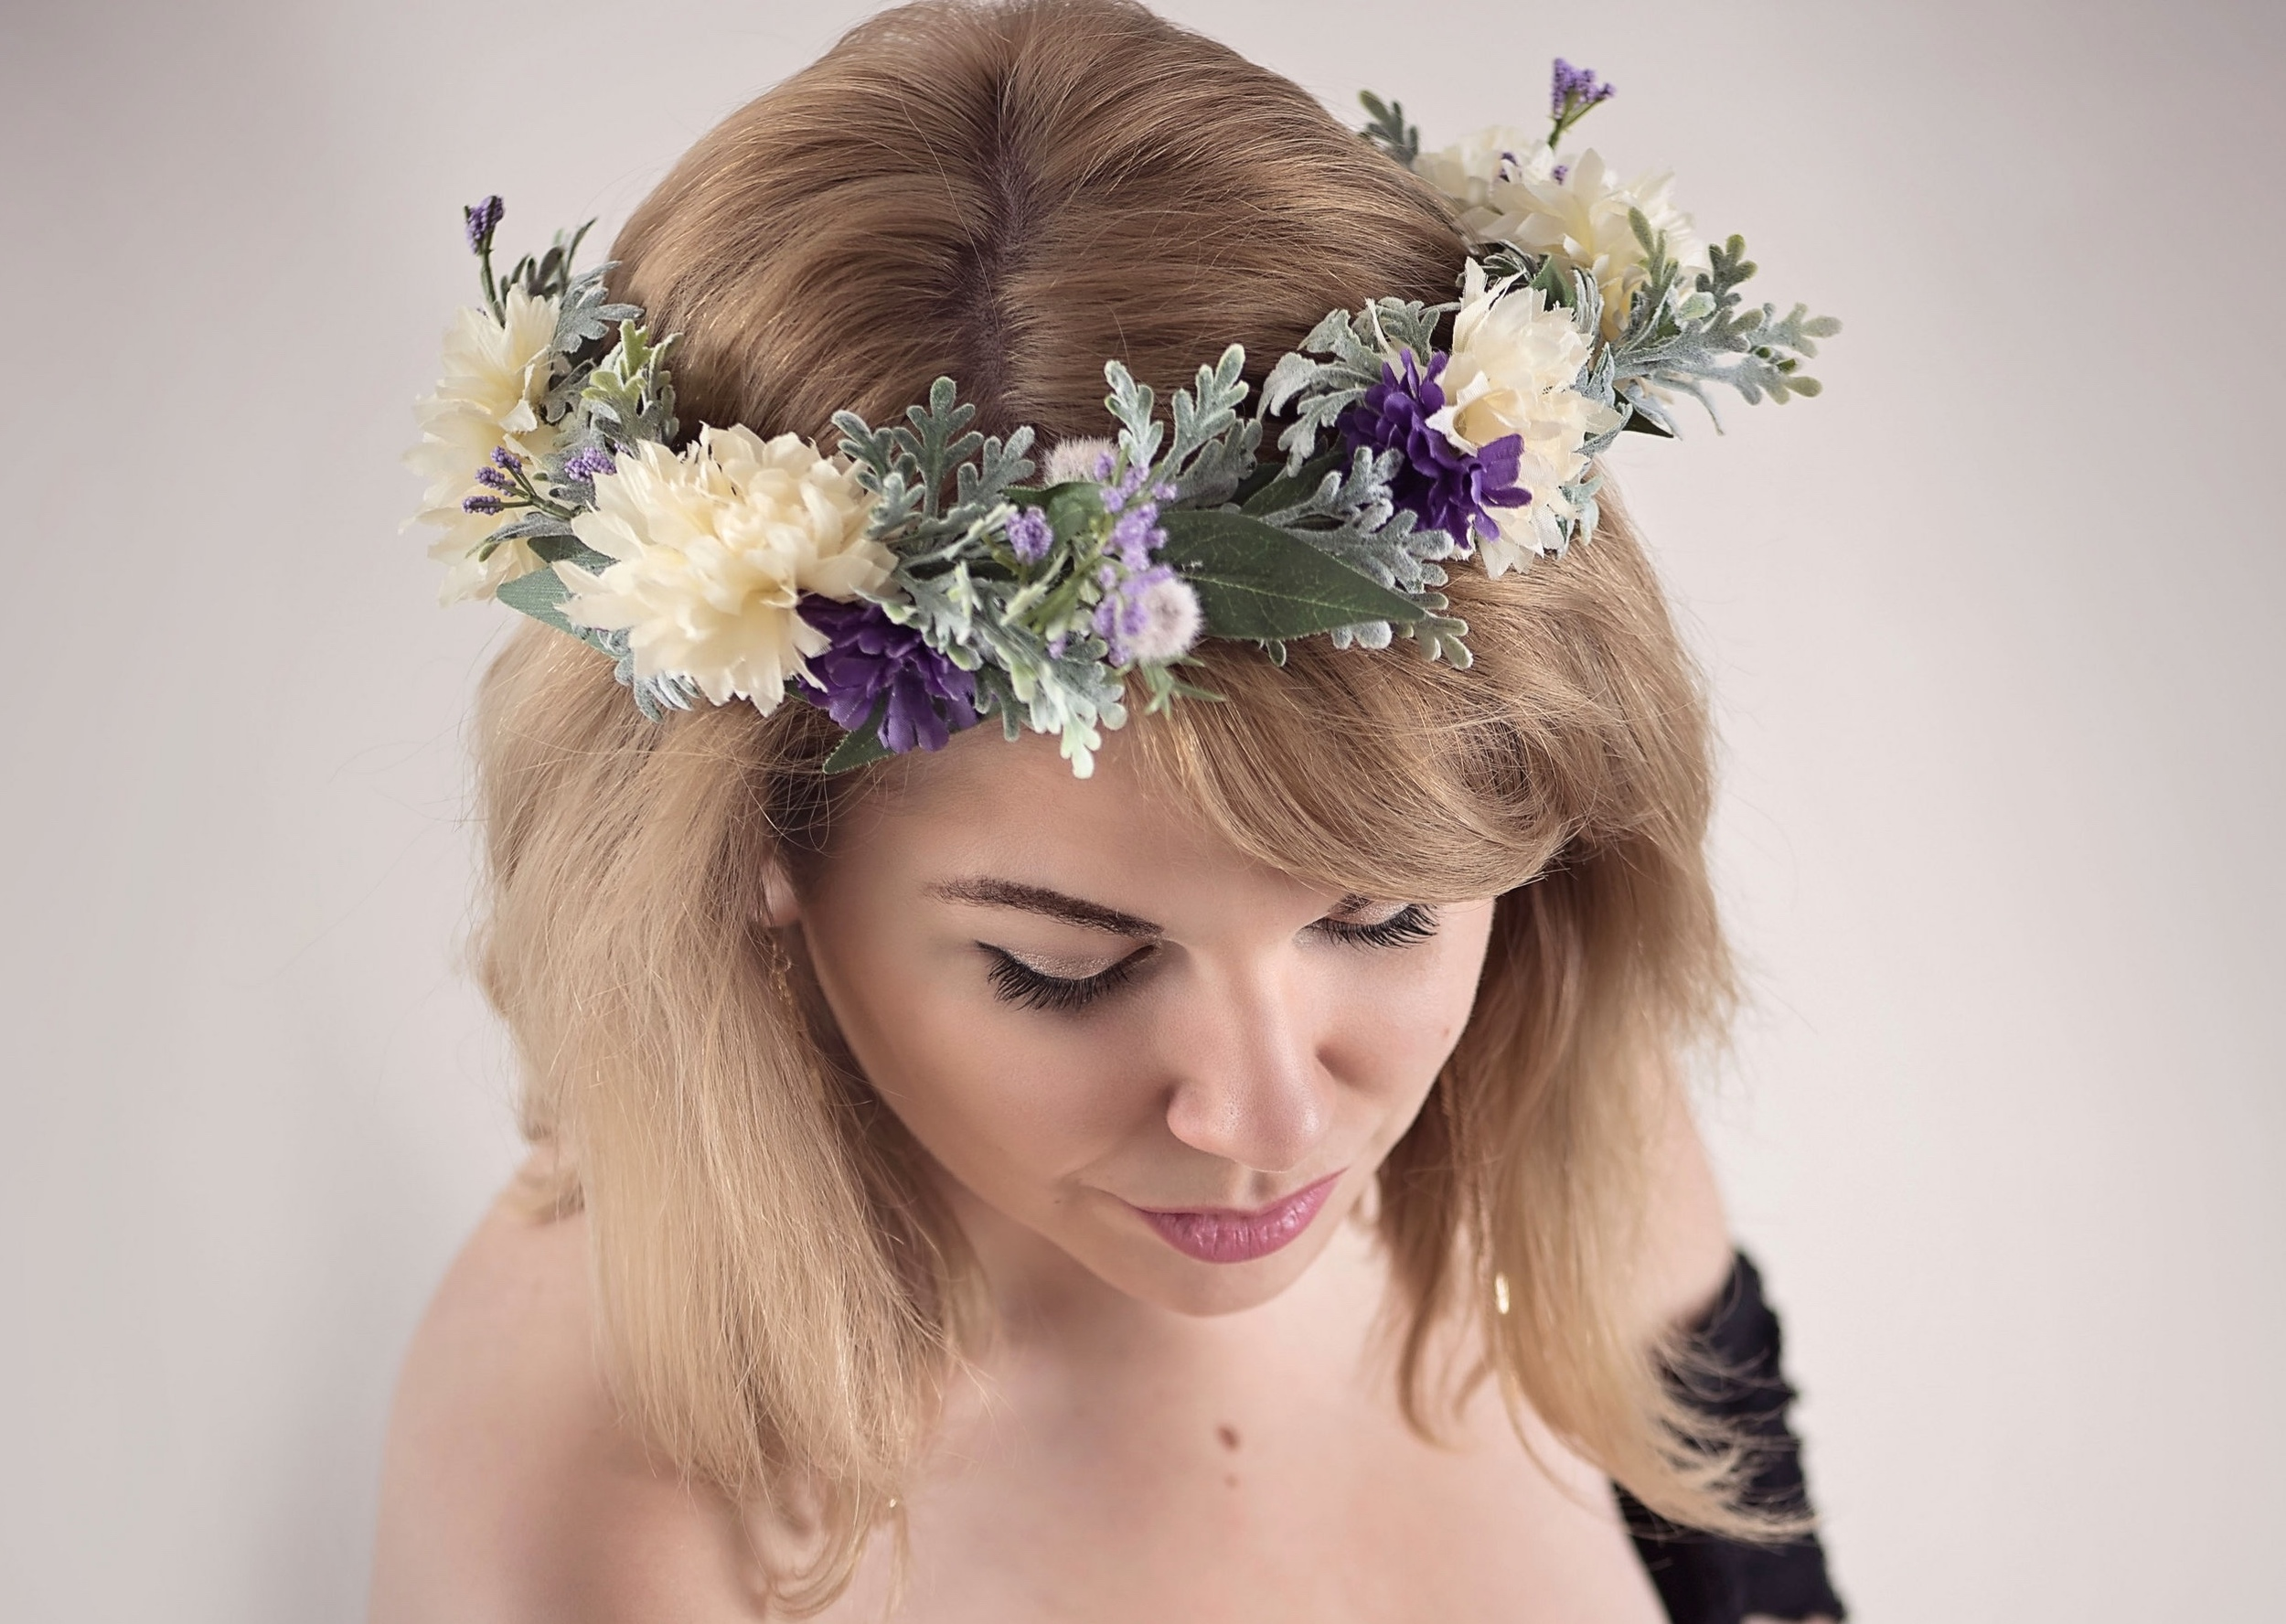 Stacey Paige Flower Crowns-Stacey Paige Flowers-0001.jpg